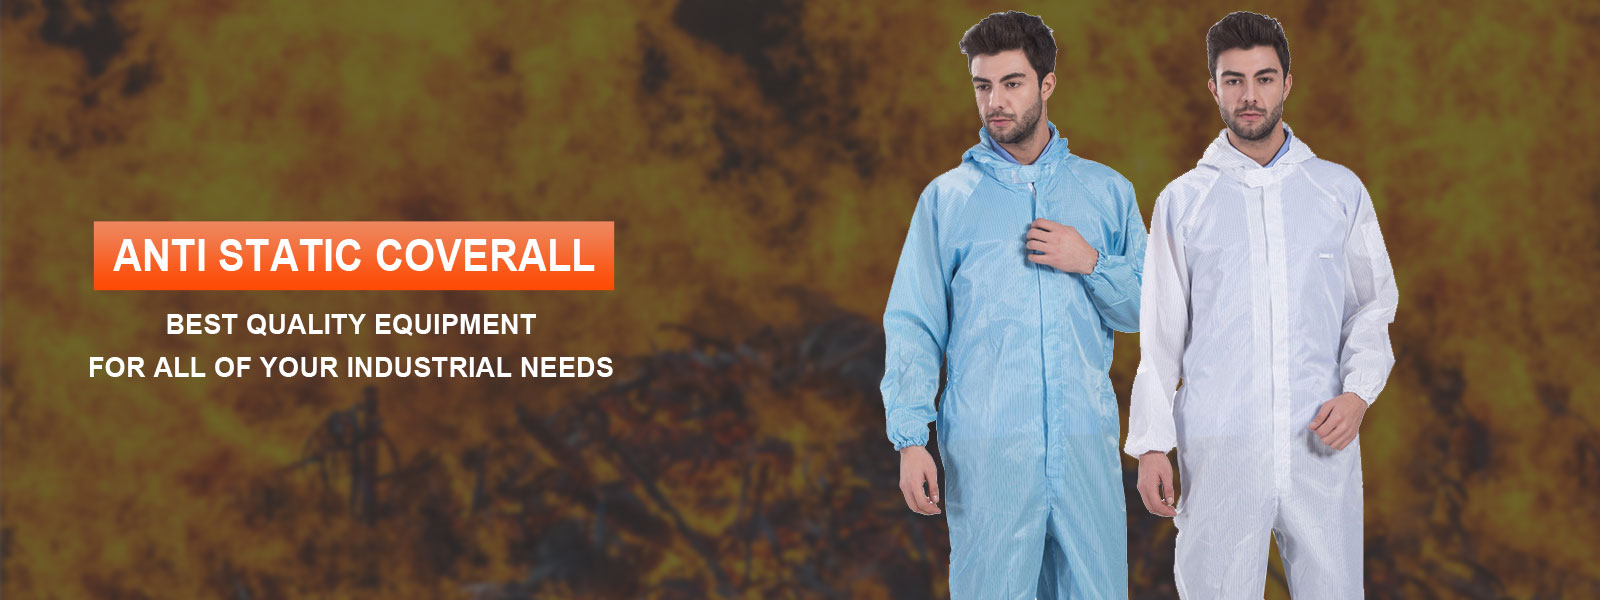 Anti Static Coverall Manufacturers in Guinea Bissau